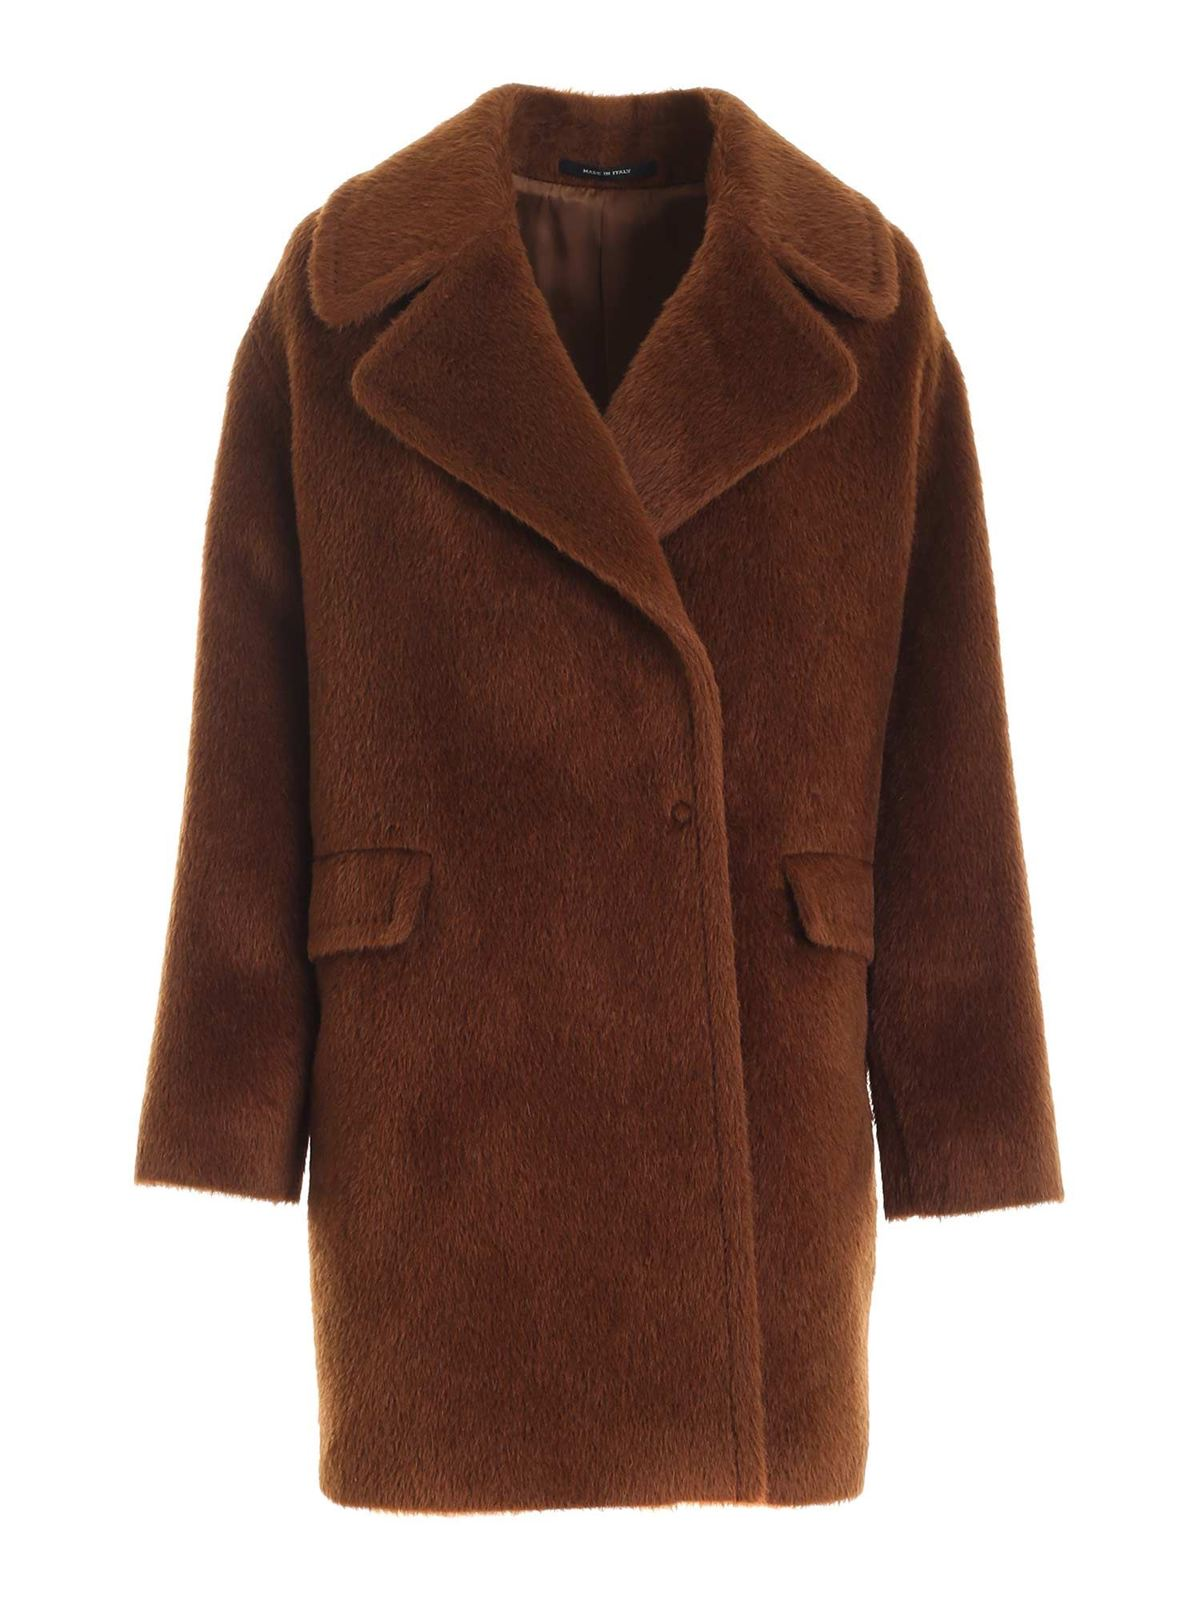 Tagliatore ASTRID DOUBLE-BREASTED COAT IN BROWN